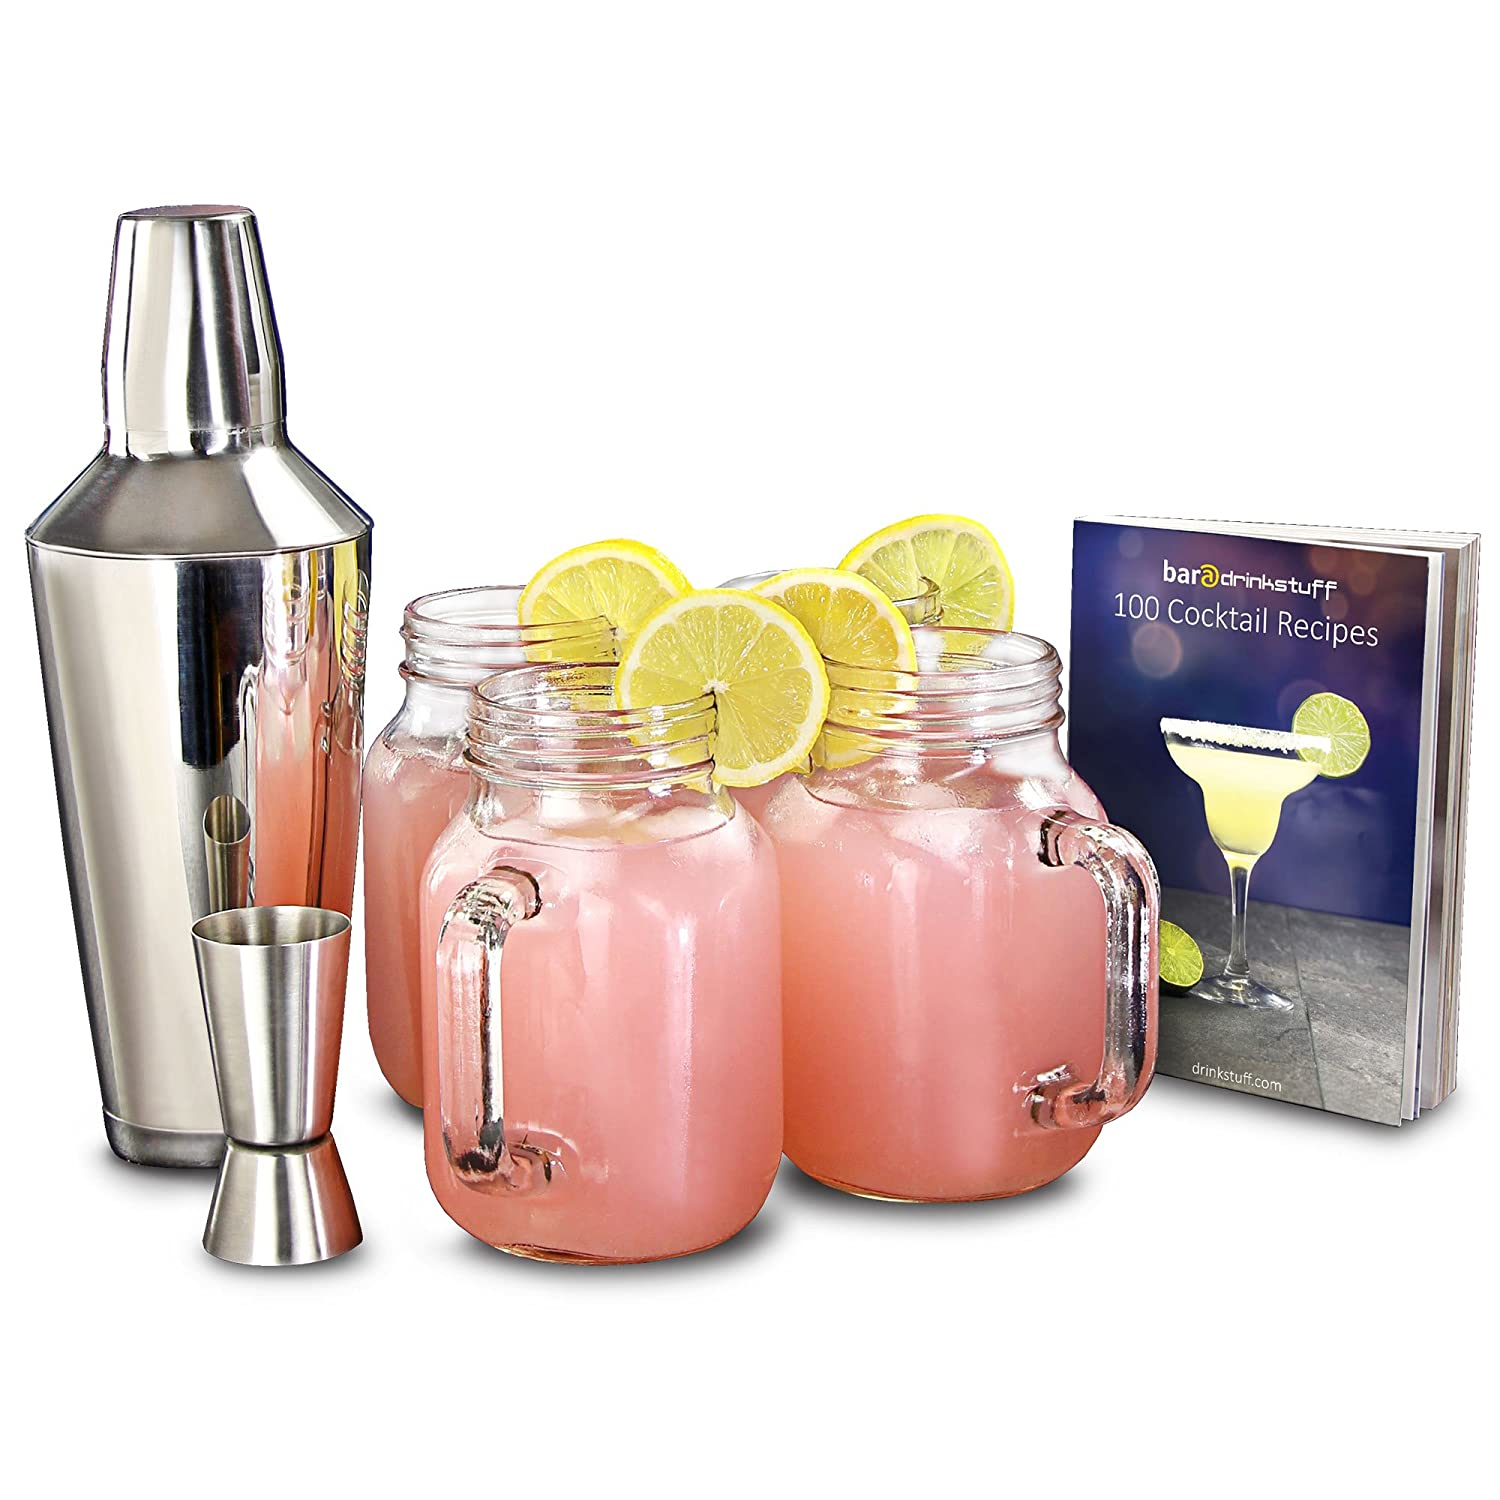 bar@drinkstuff Mason Jar Cocktail Set - Vintage Cocktail Making Kit including 4 Jam Jar Glasses, Shaker and Recipe Book